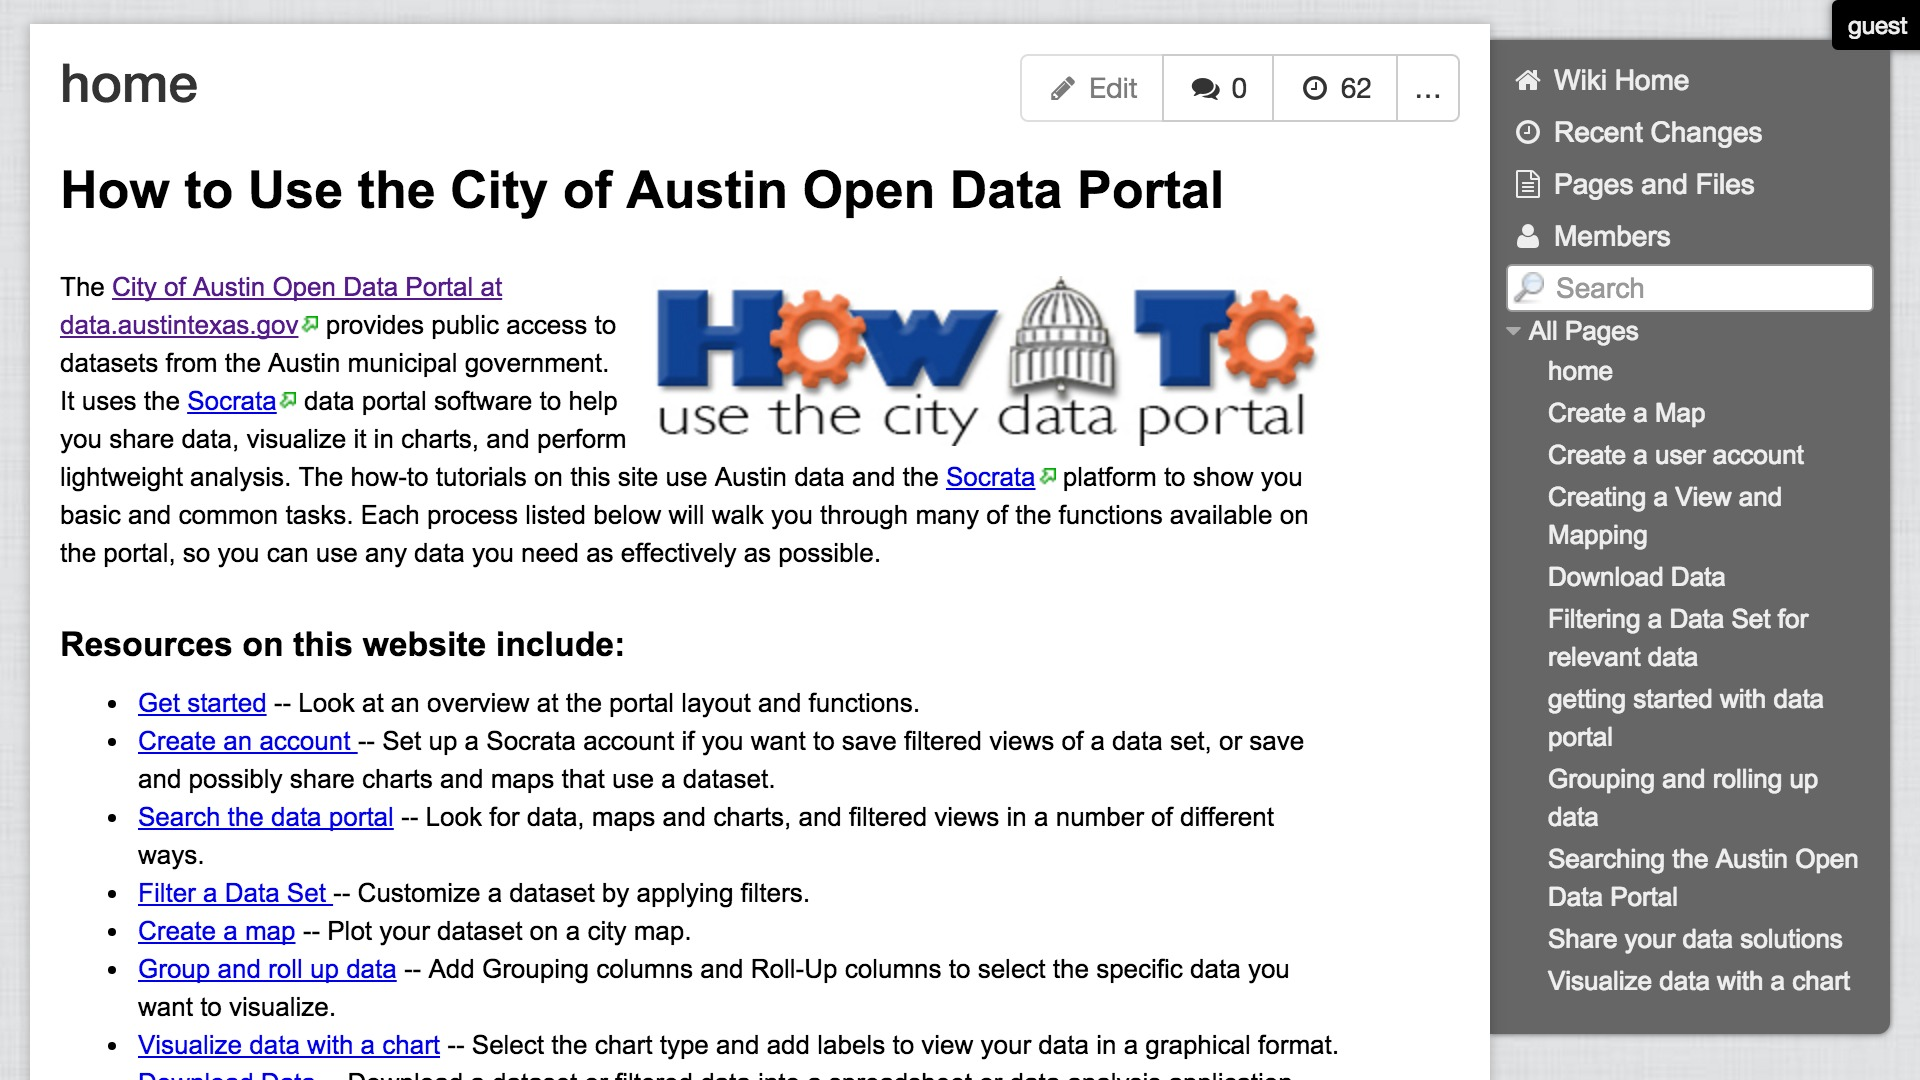 How to Use the City of Austin Open Data Portal